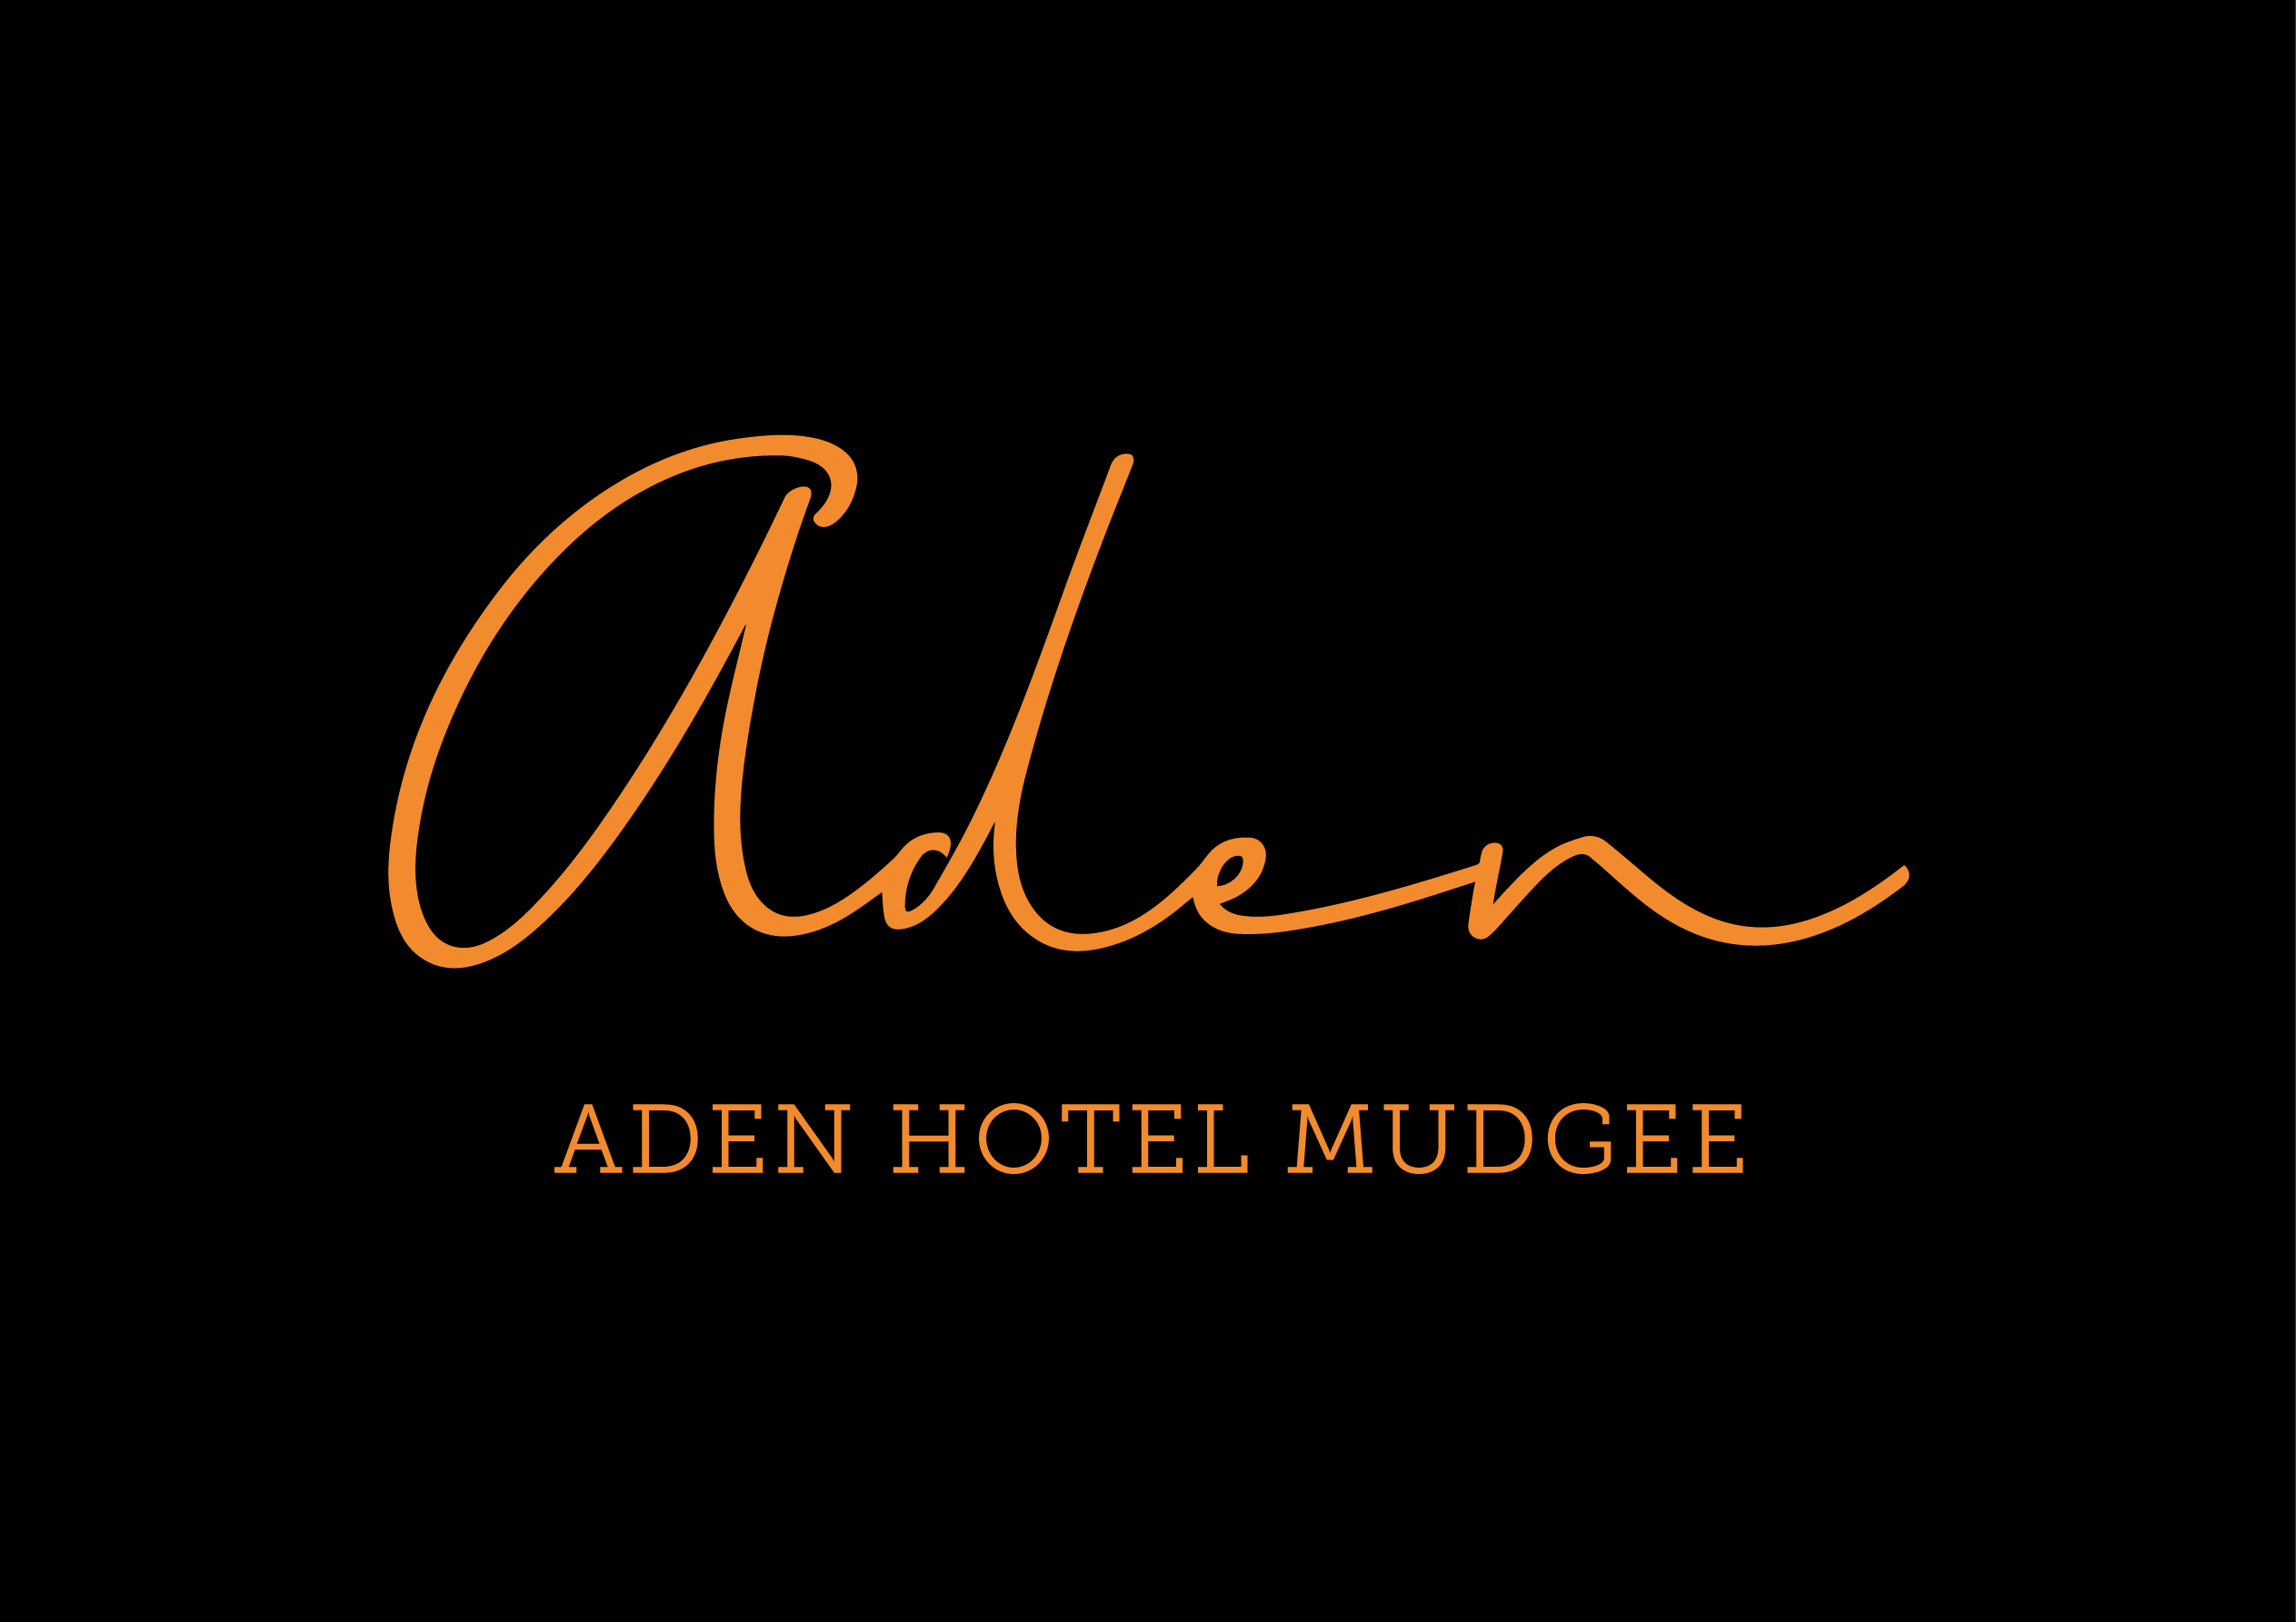 Comfort Inn Aden Hotel Mudgee - Accommodation 4U